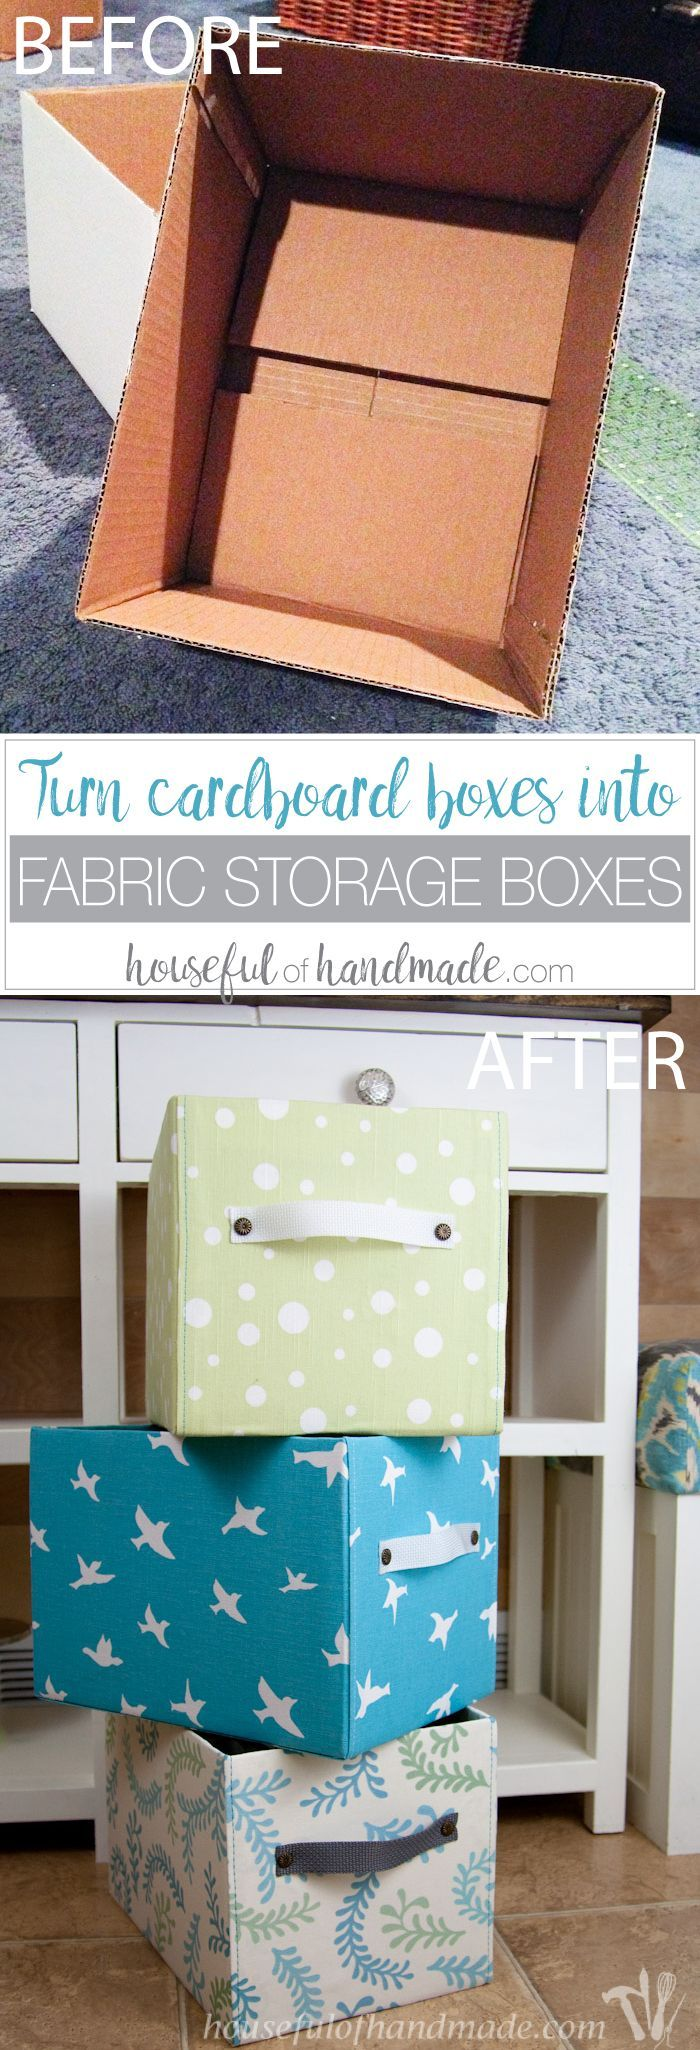 Upcycle Cardboard Boxes Into Beautiful Fabric Storage Boxes. Easy Tutorial  That Anyone Can Do. Save Yourself Tons Of Money Over Buying Storage Boxes.